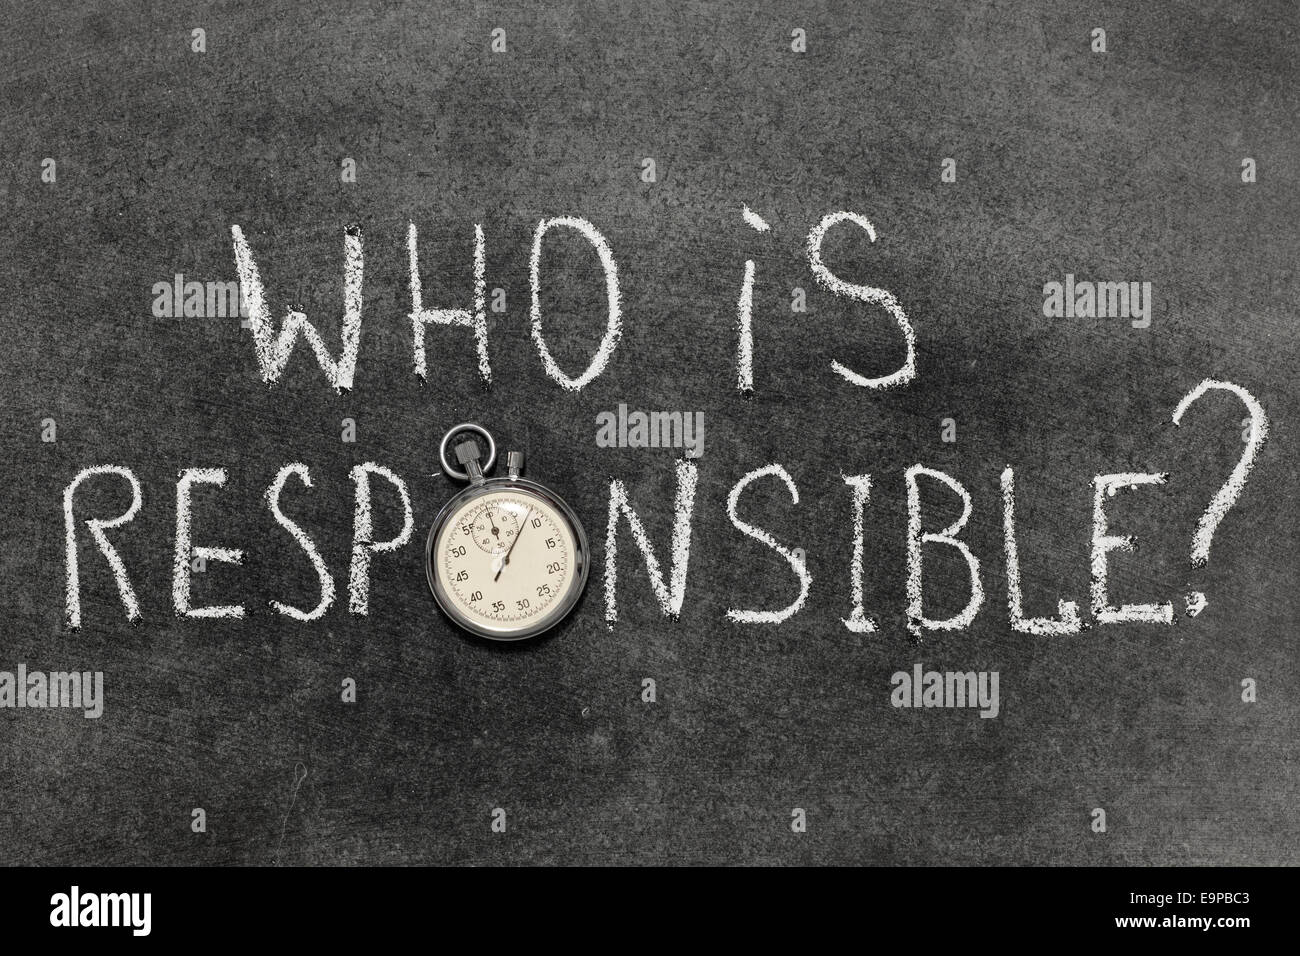 who is responsible question handwritten on chalkboard with vintage precise stopwatch used instead of O - Stock Image